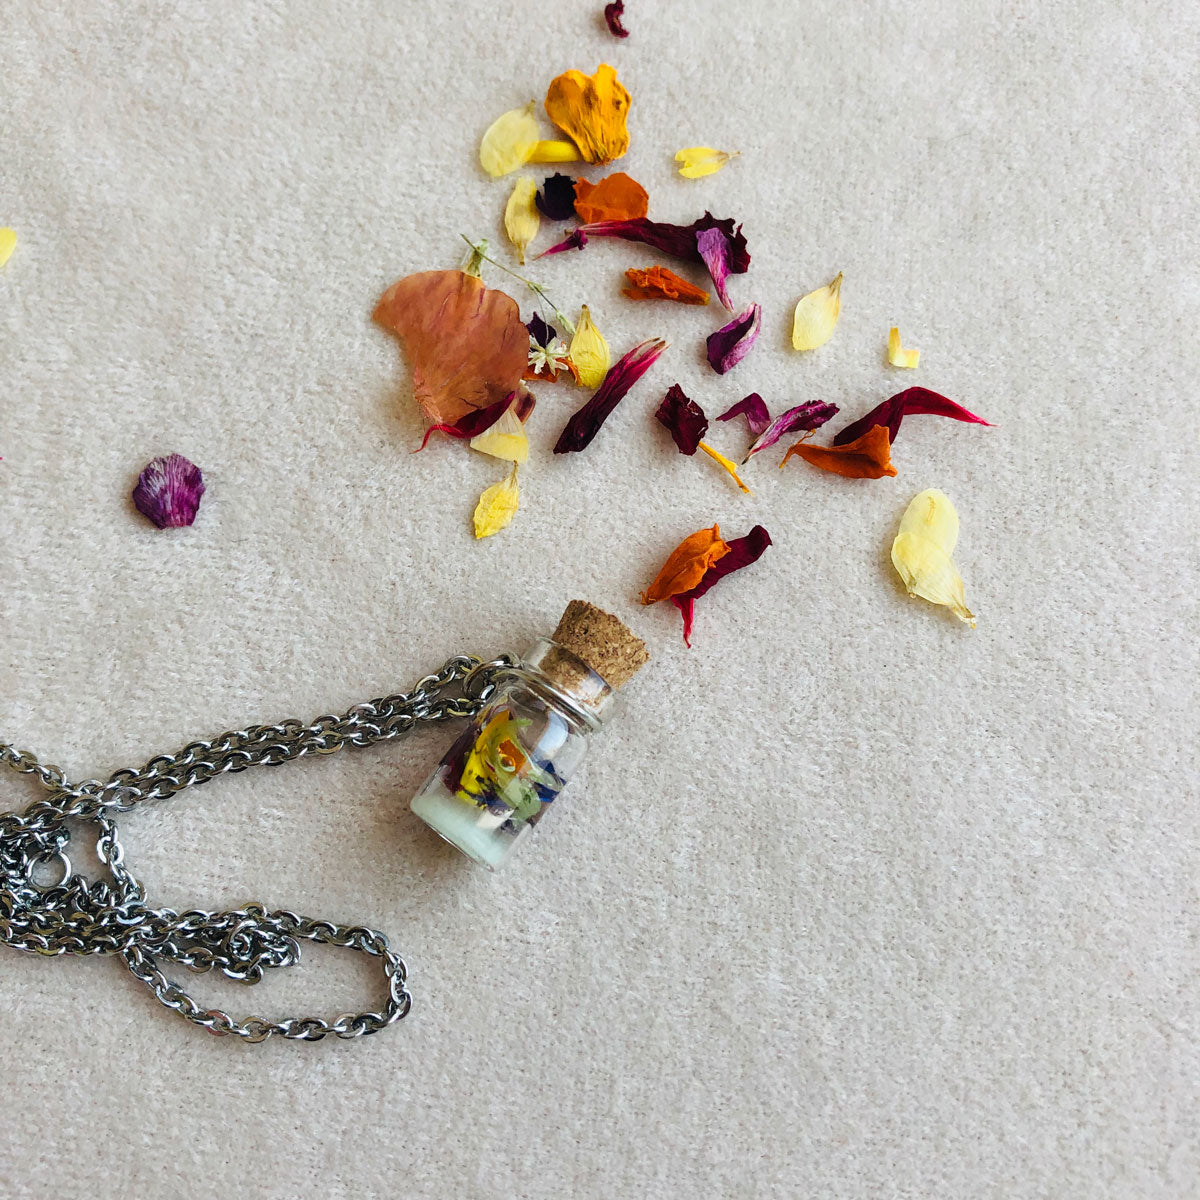 Tiny bottle with autumn leaves